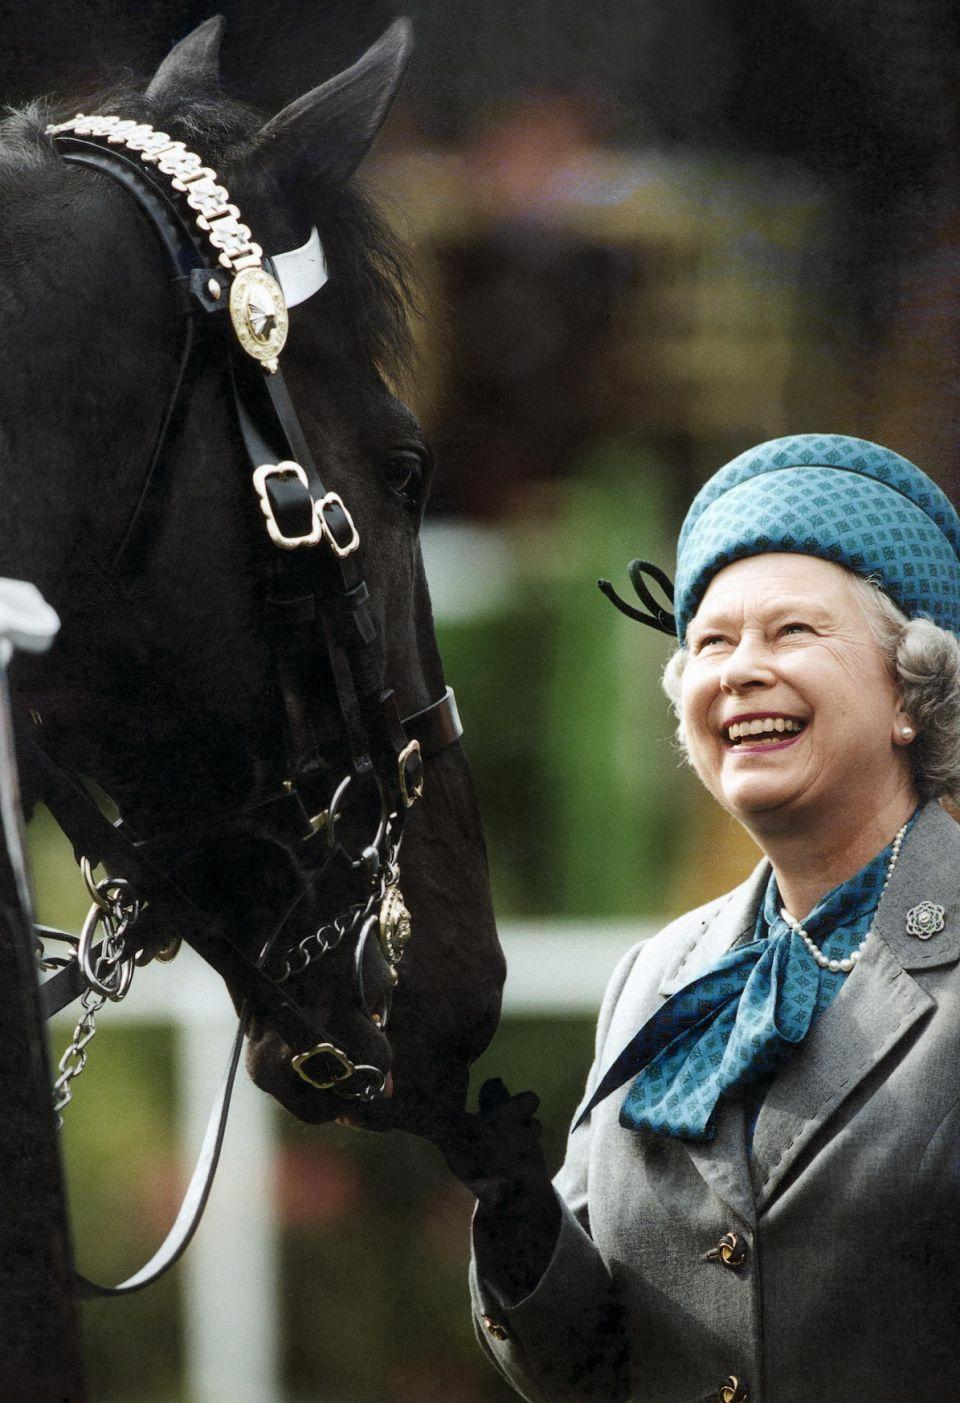 The Queen is known for her love of horses which has spanned decades. Photo: Getty